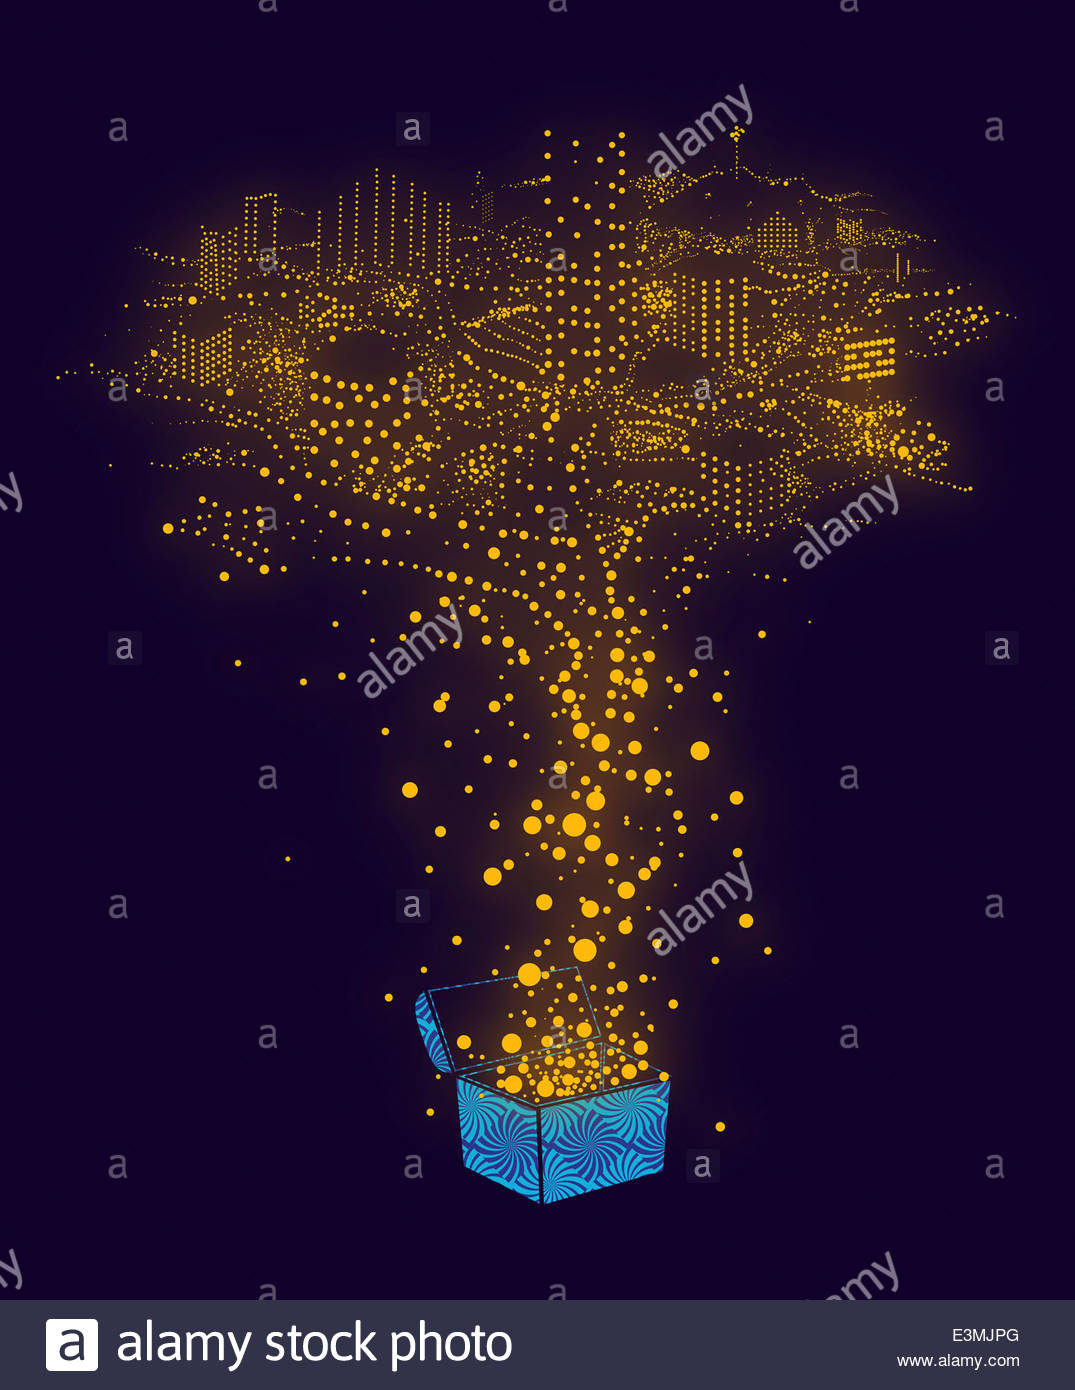 Illuminated dots from treasure chest forming city - Stock Image